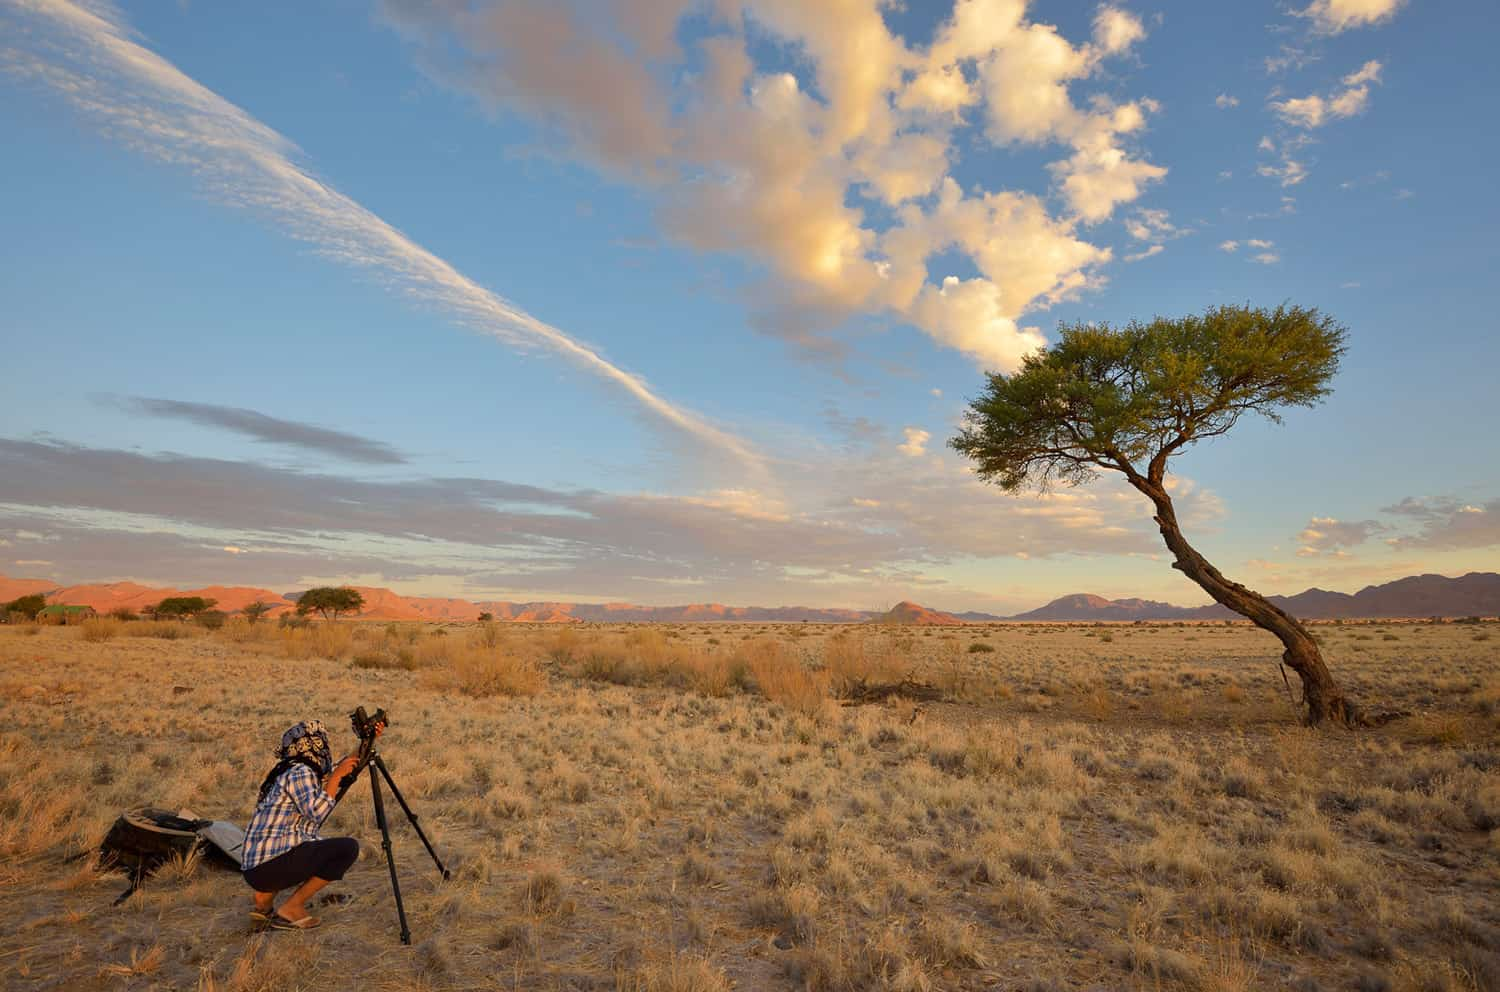 Namibia Landscape Photography14 - Capturing Space: Our Photography Workshop in Namibia